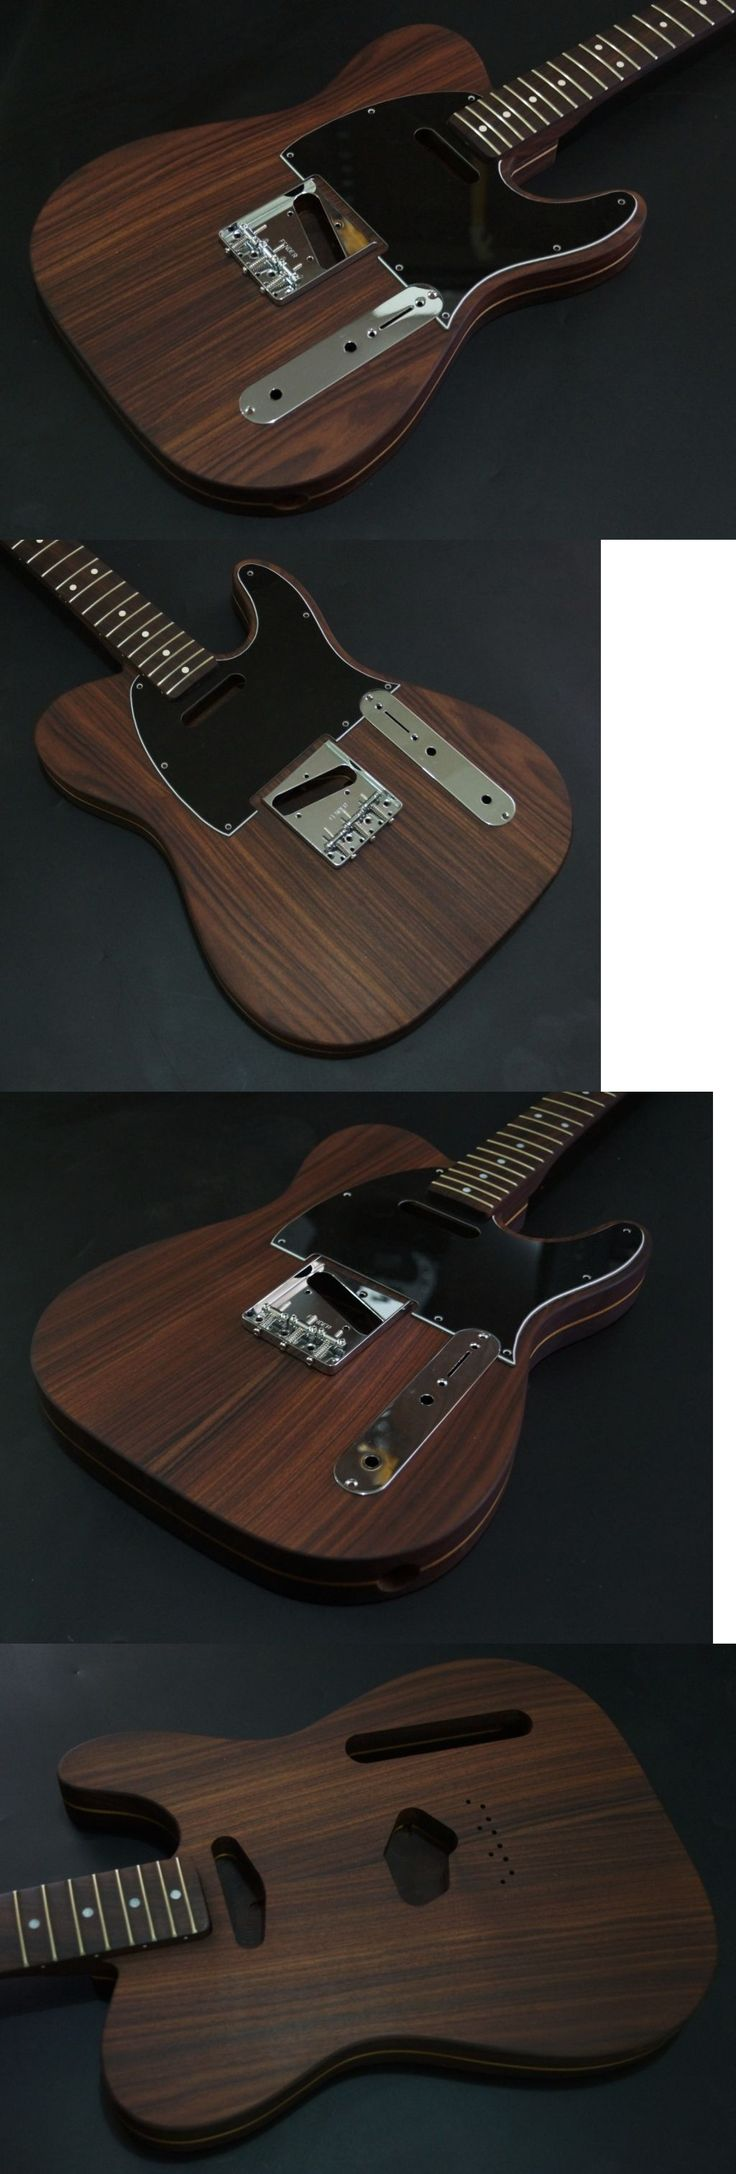 musical instruments: Rosewood Guitar Body And Neck Screw Holes For American Telecaster Bridge -> BUY IT NOW ONLY: $850 on eBay!